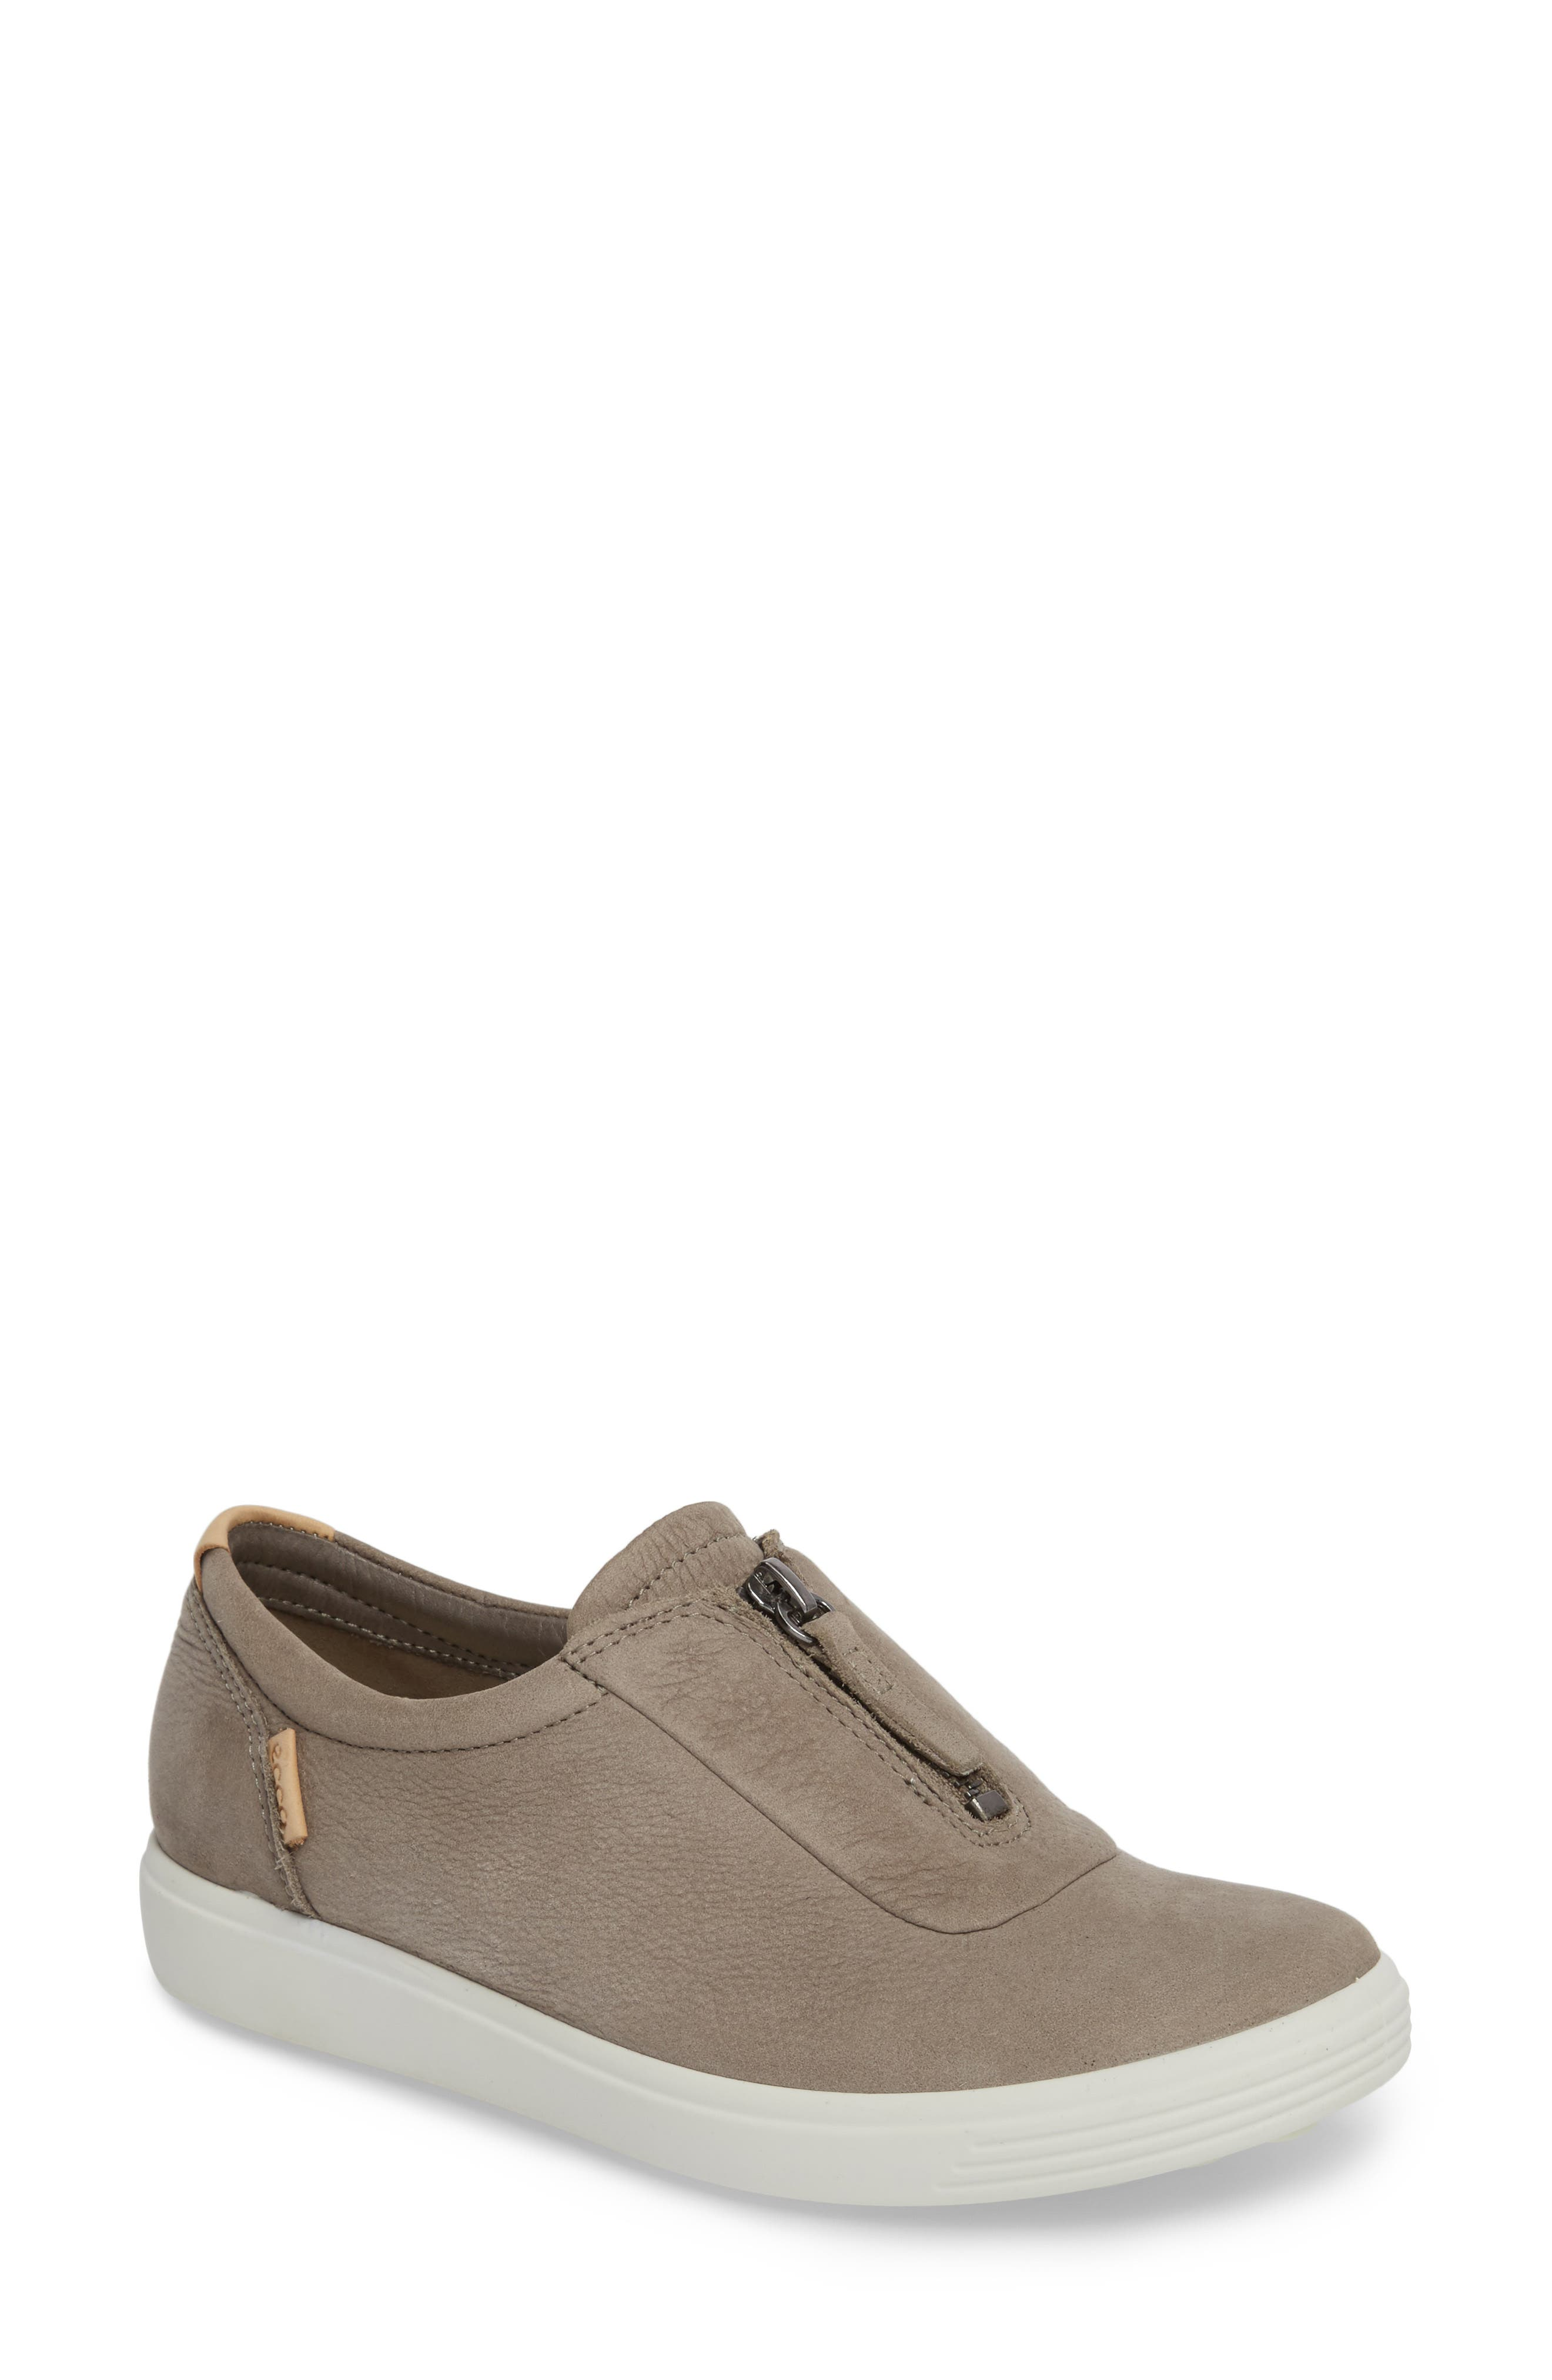 ECCO,                             Soft 7 Slip-On Sneaker,                             Main thumbnail 1, color,                             WARM GREY LEATHER